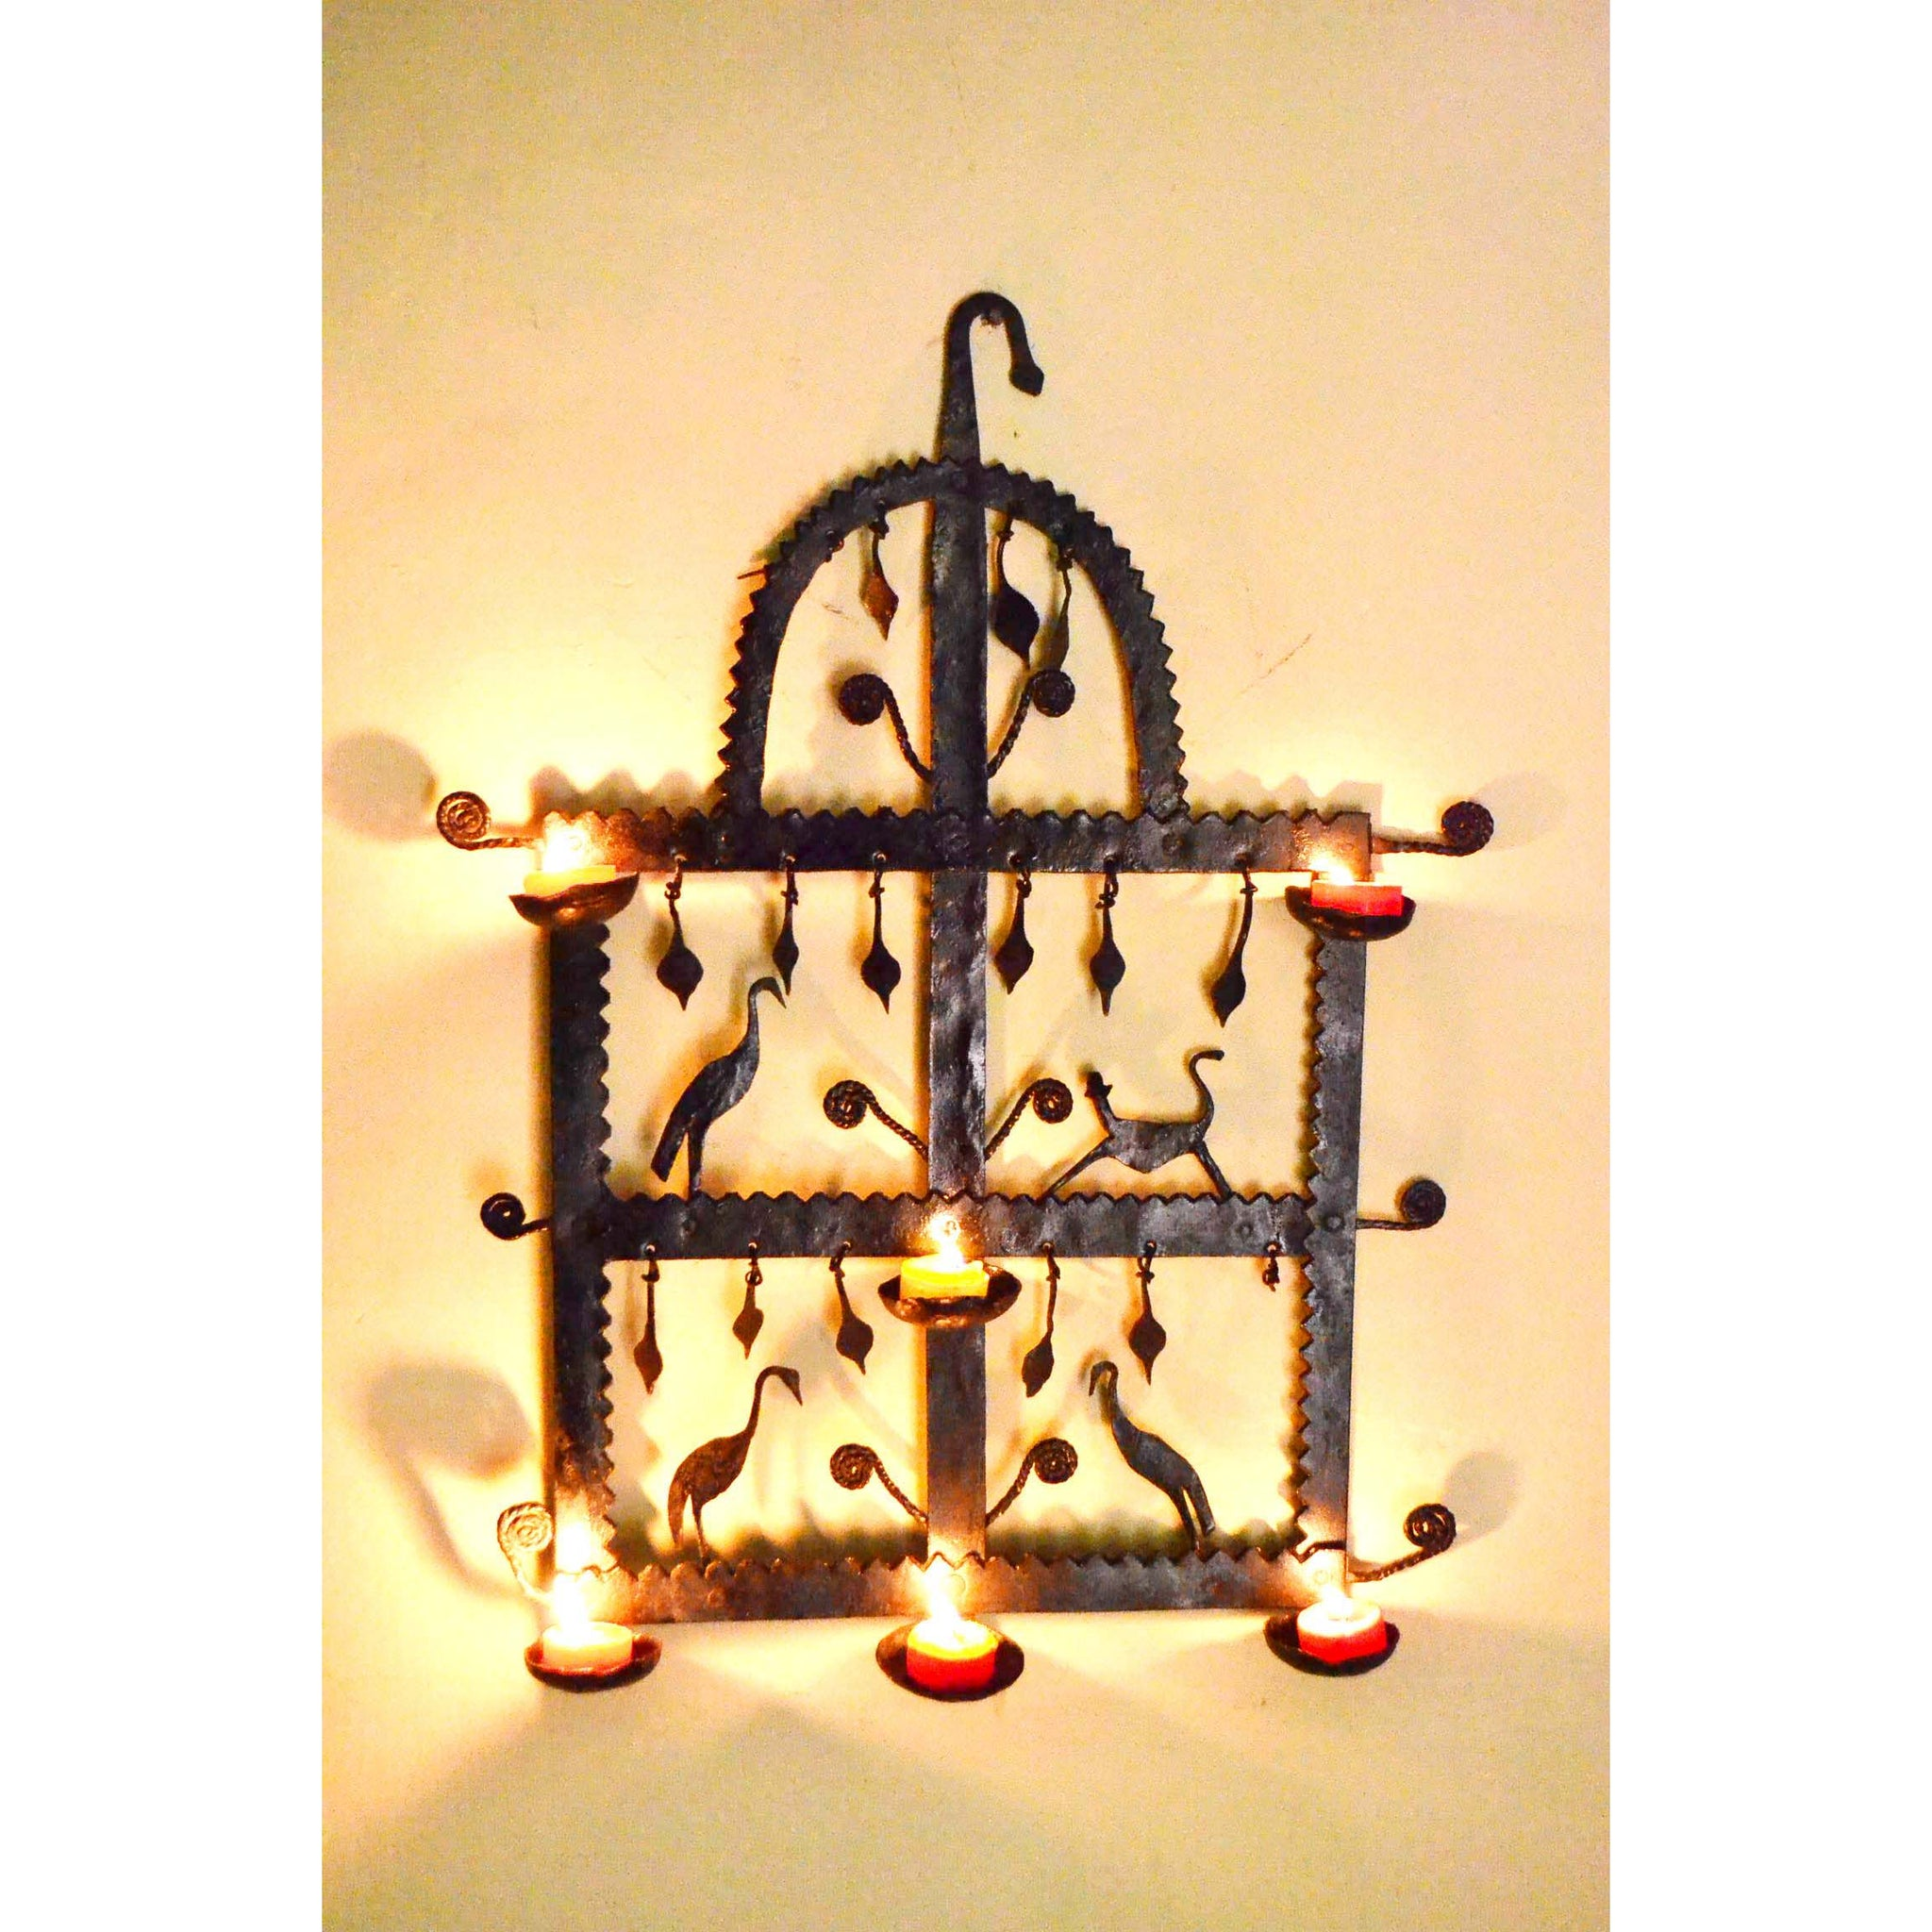 Chinhhari arts Wrought Iron Diya Wall Hanging – Chinhhari Arts store